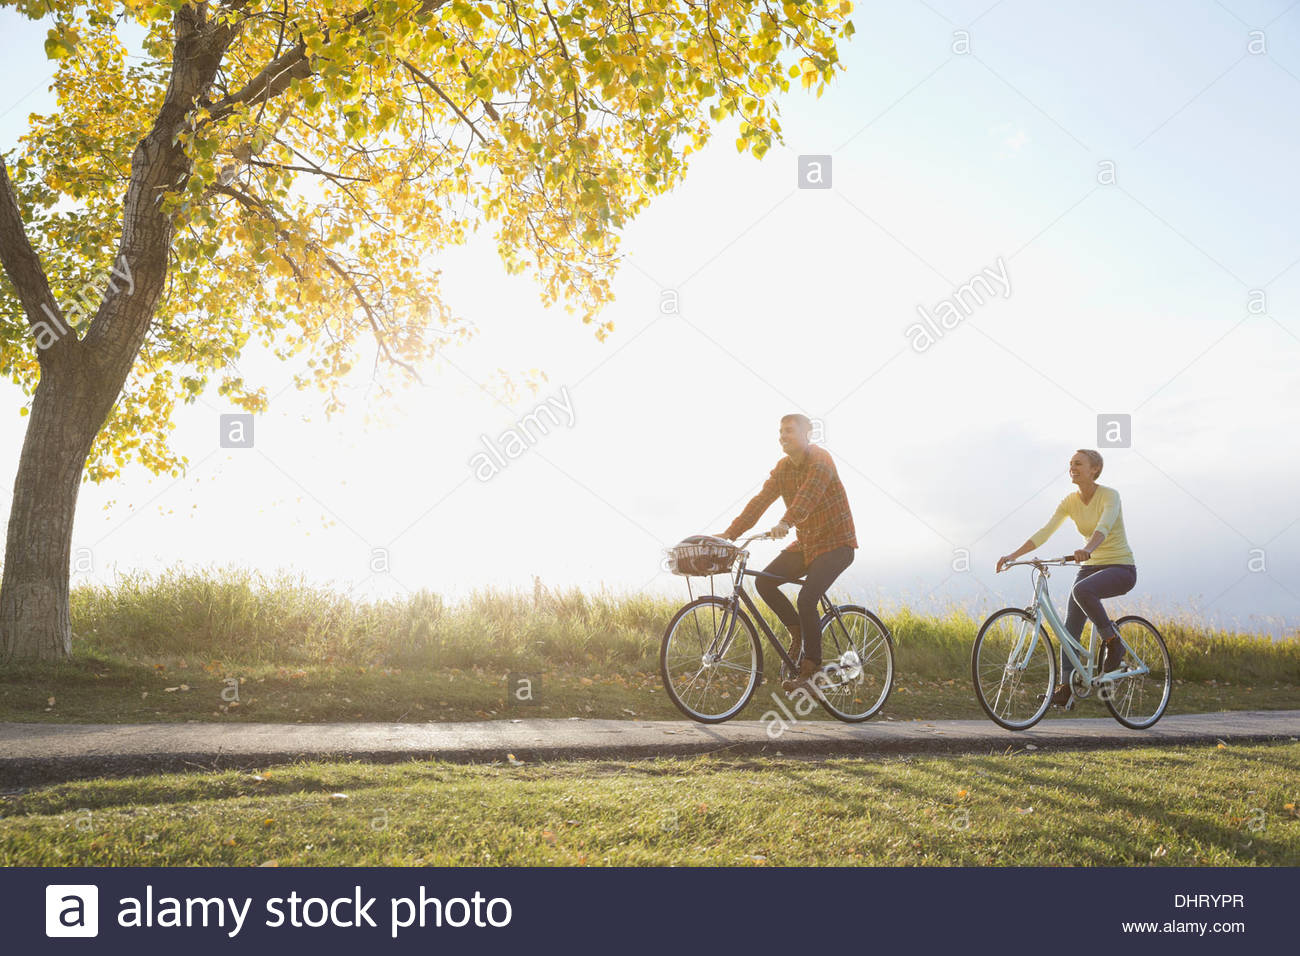 Couple cycling on country road - Stock Image